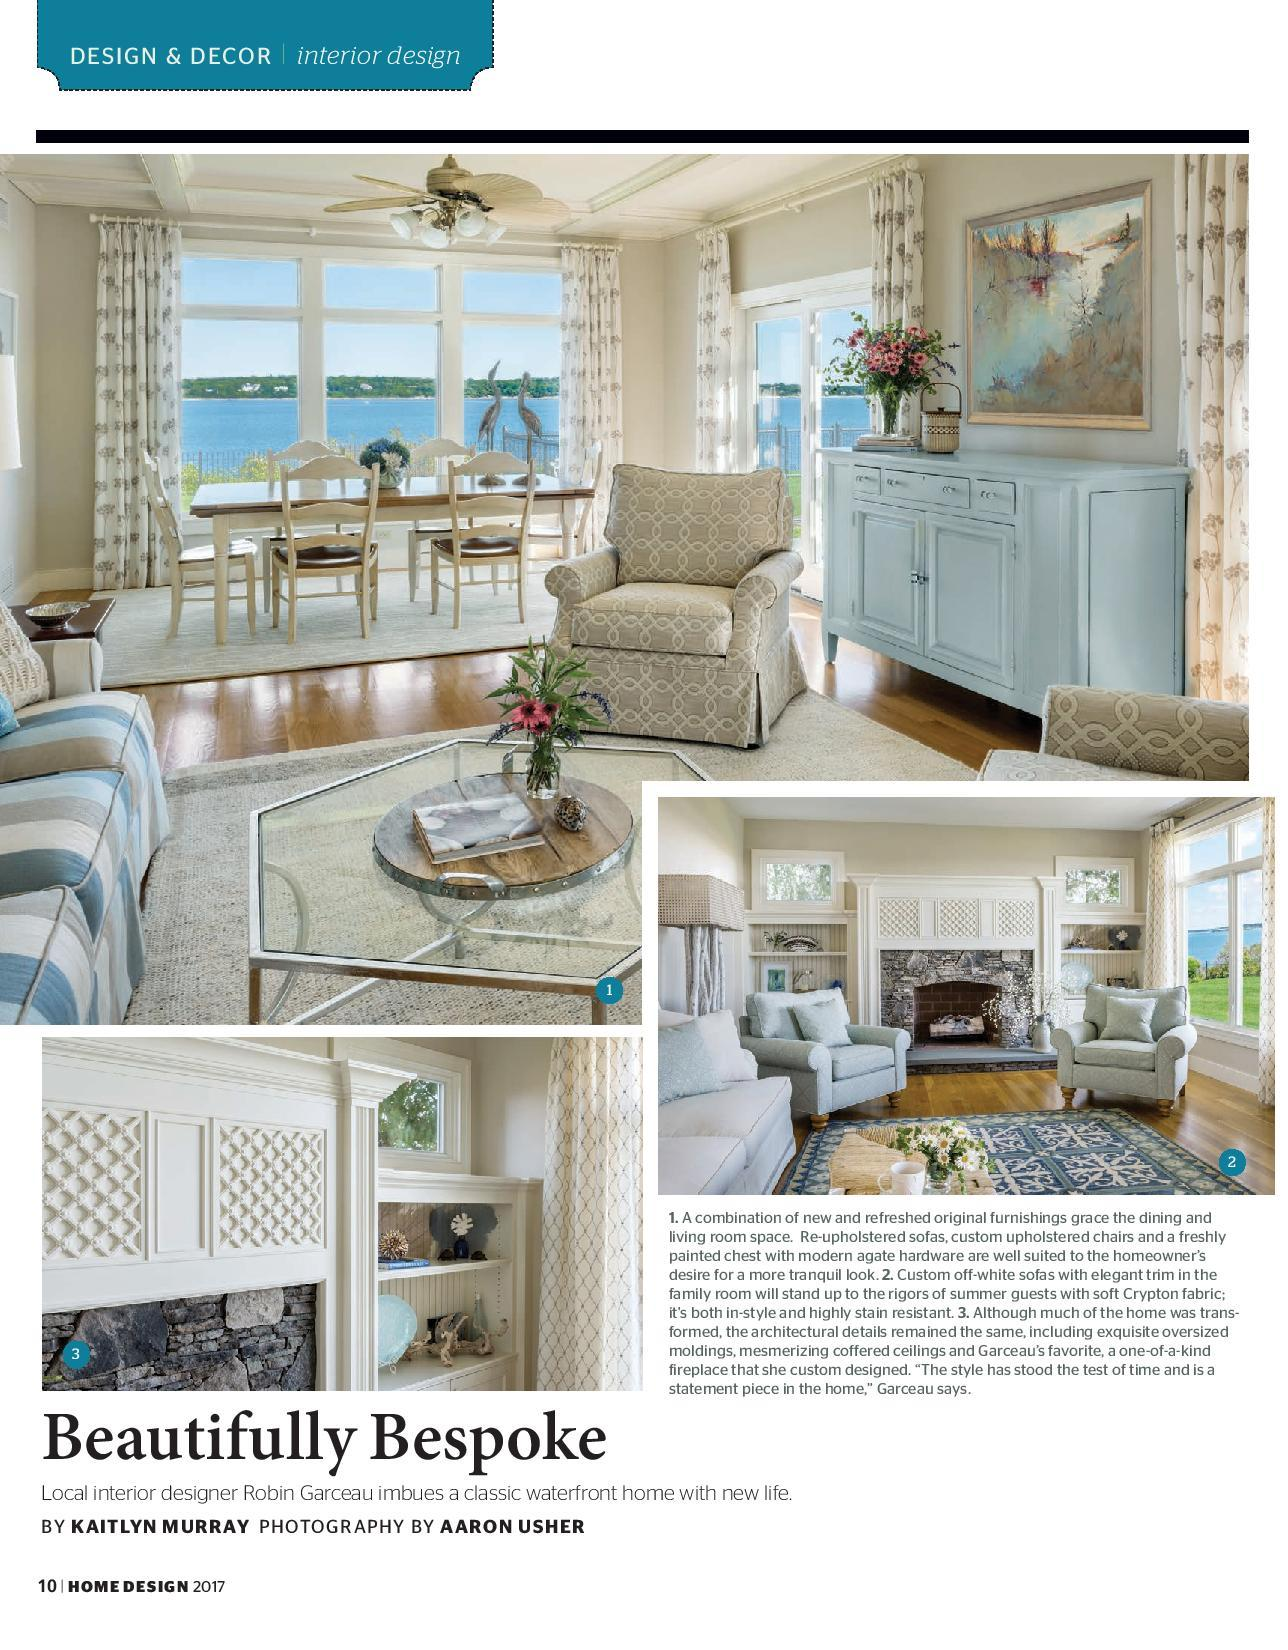 Robin Garceau featured in Rhode Island Home Design Magazine 2017 page 1